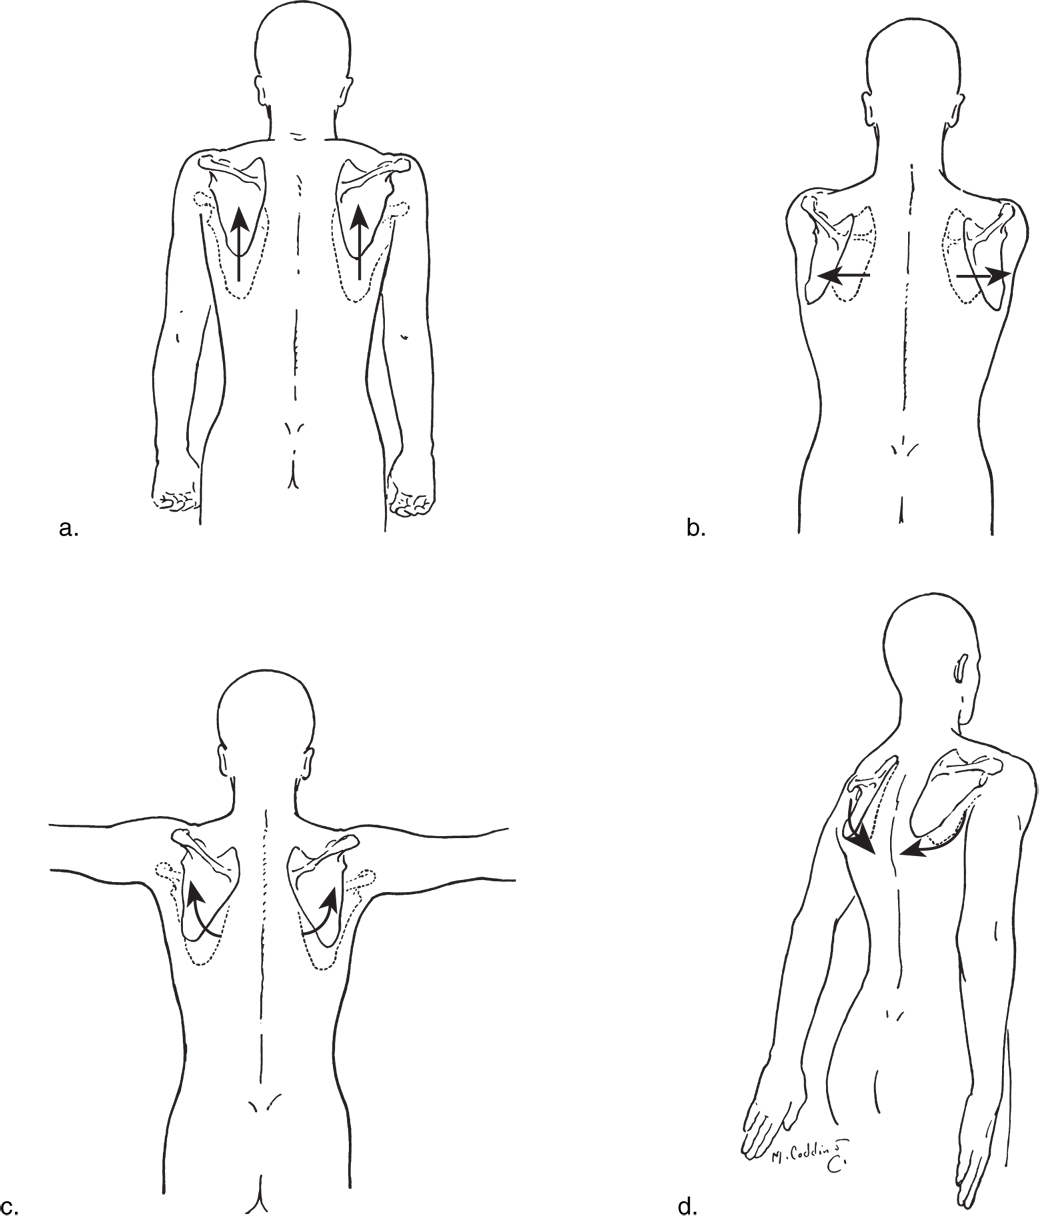 clip art Drawing nipples anatomy. Related image upper body